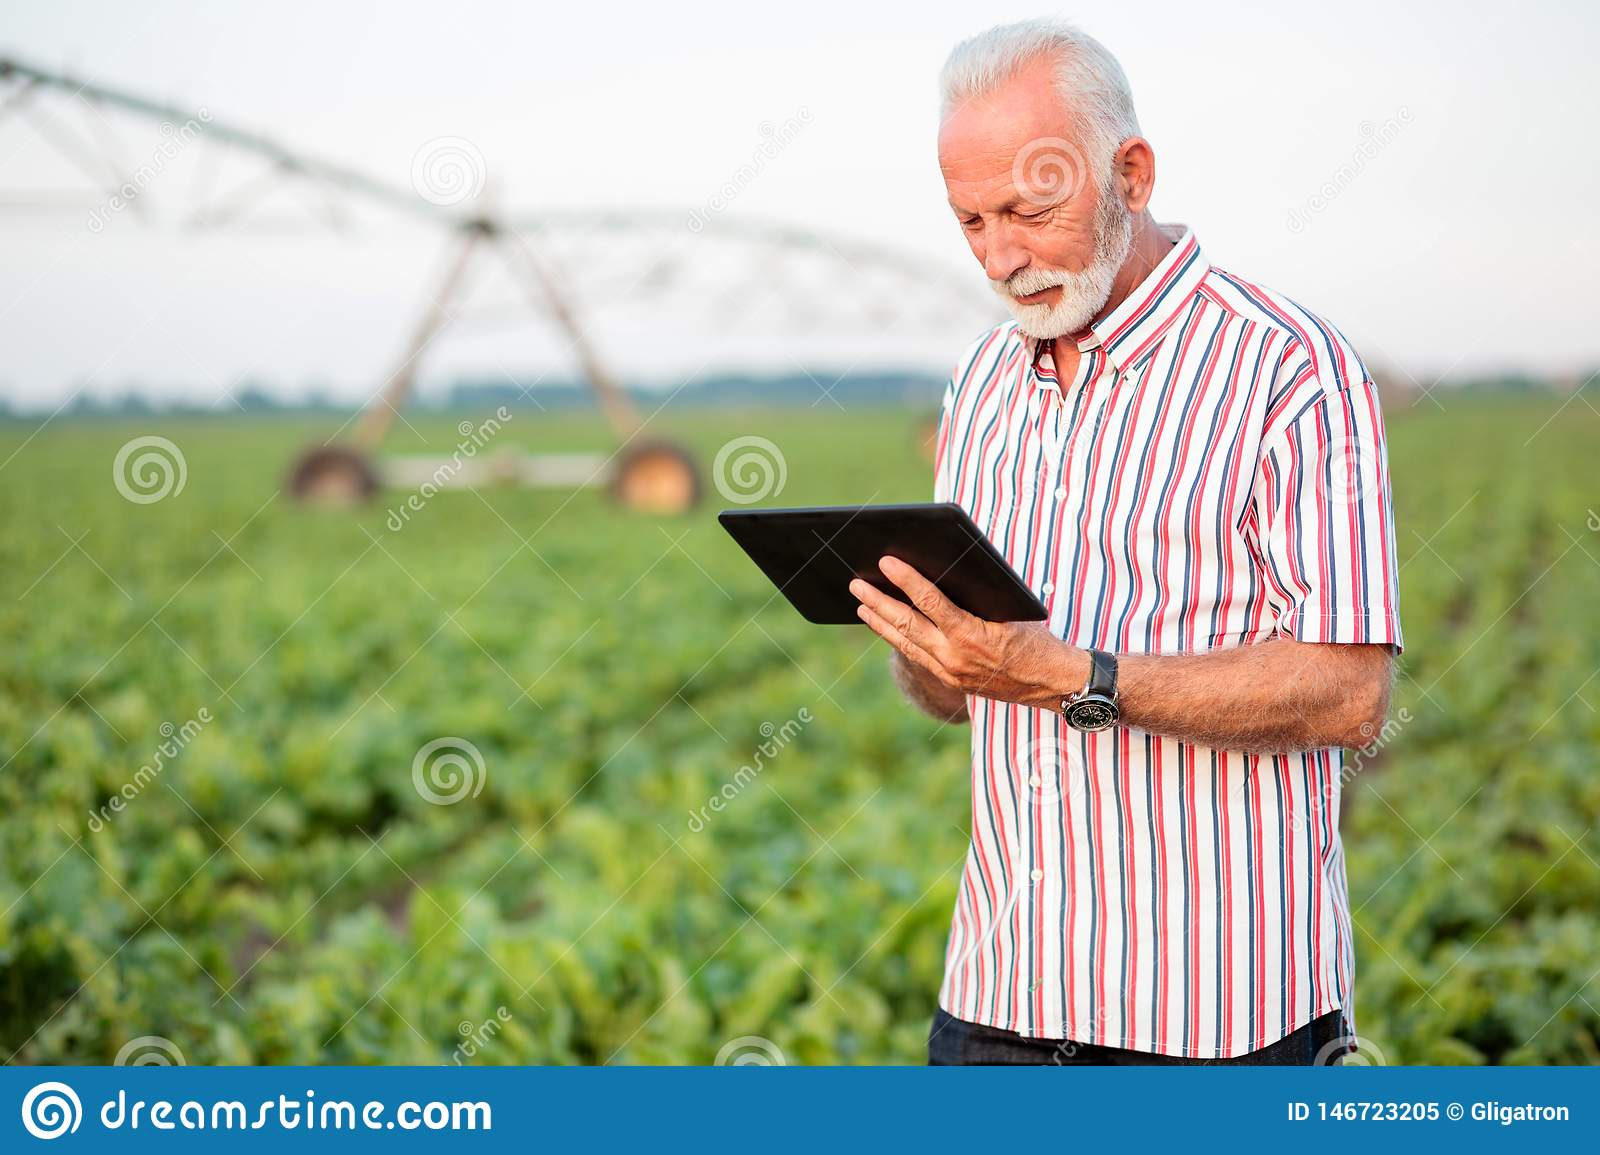 Happy and satisfied senior agronomist or farmer using a tablet in soybean field